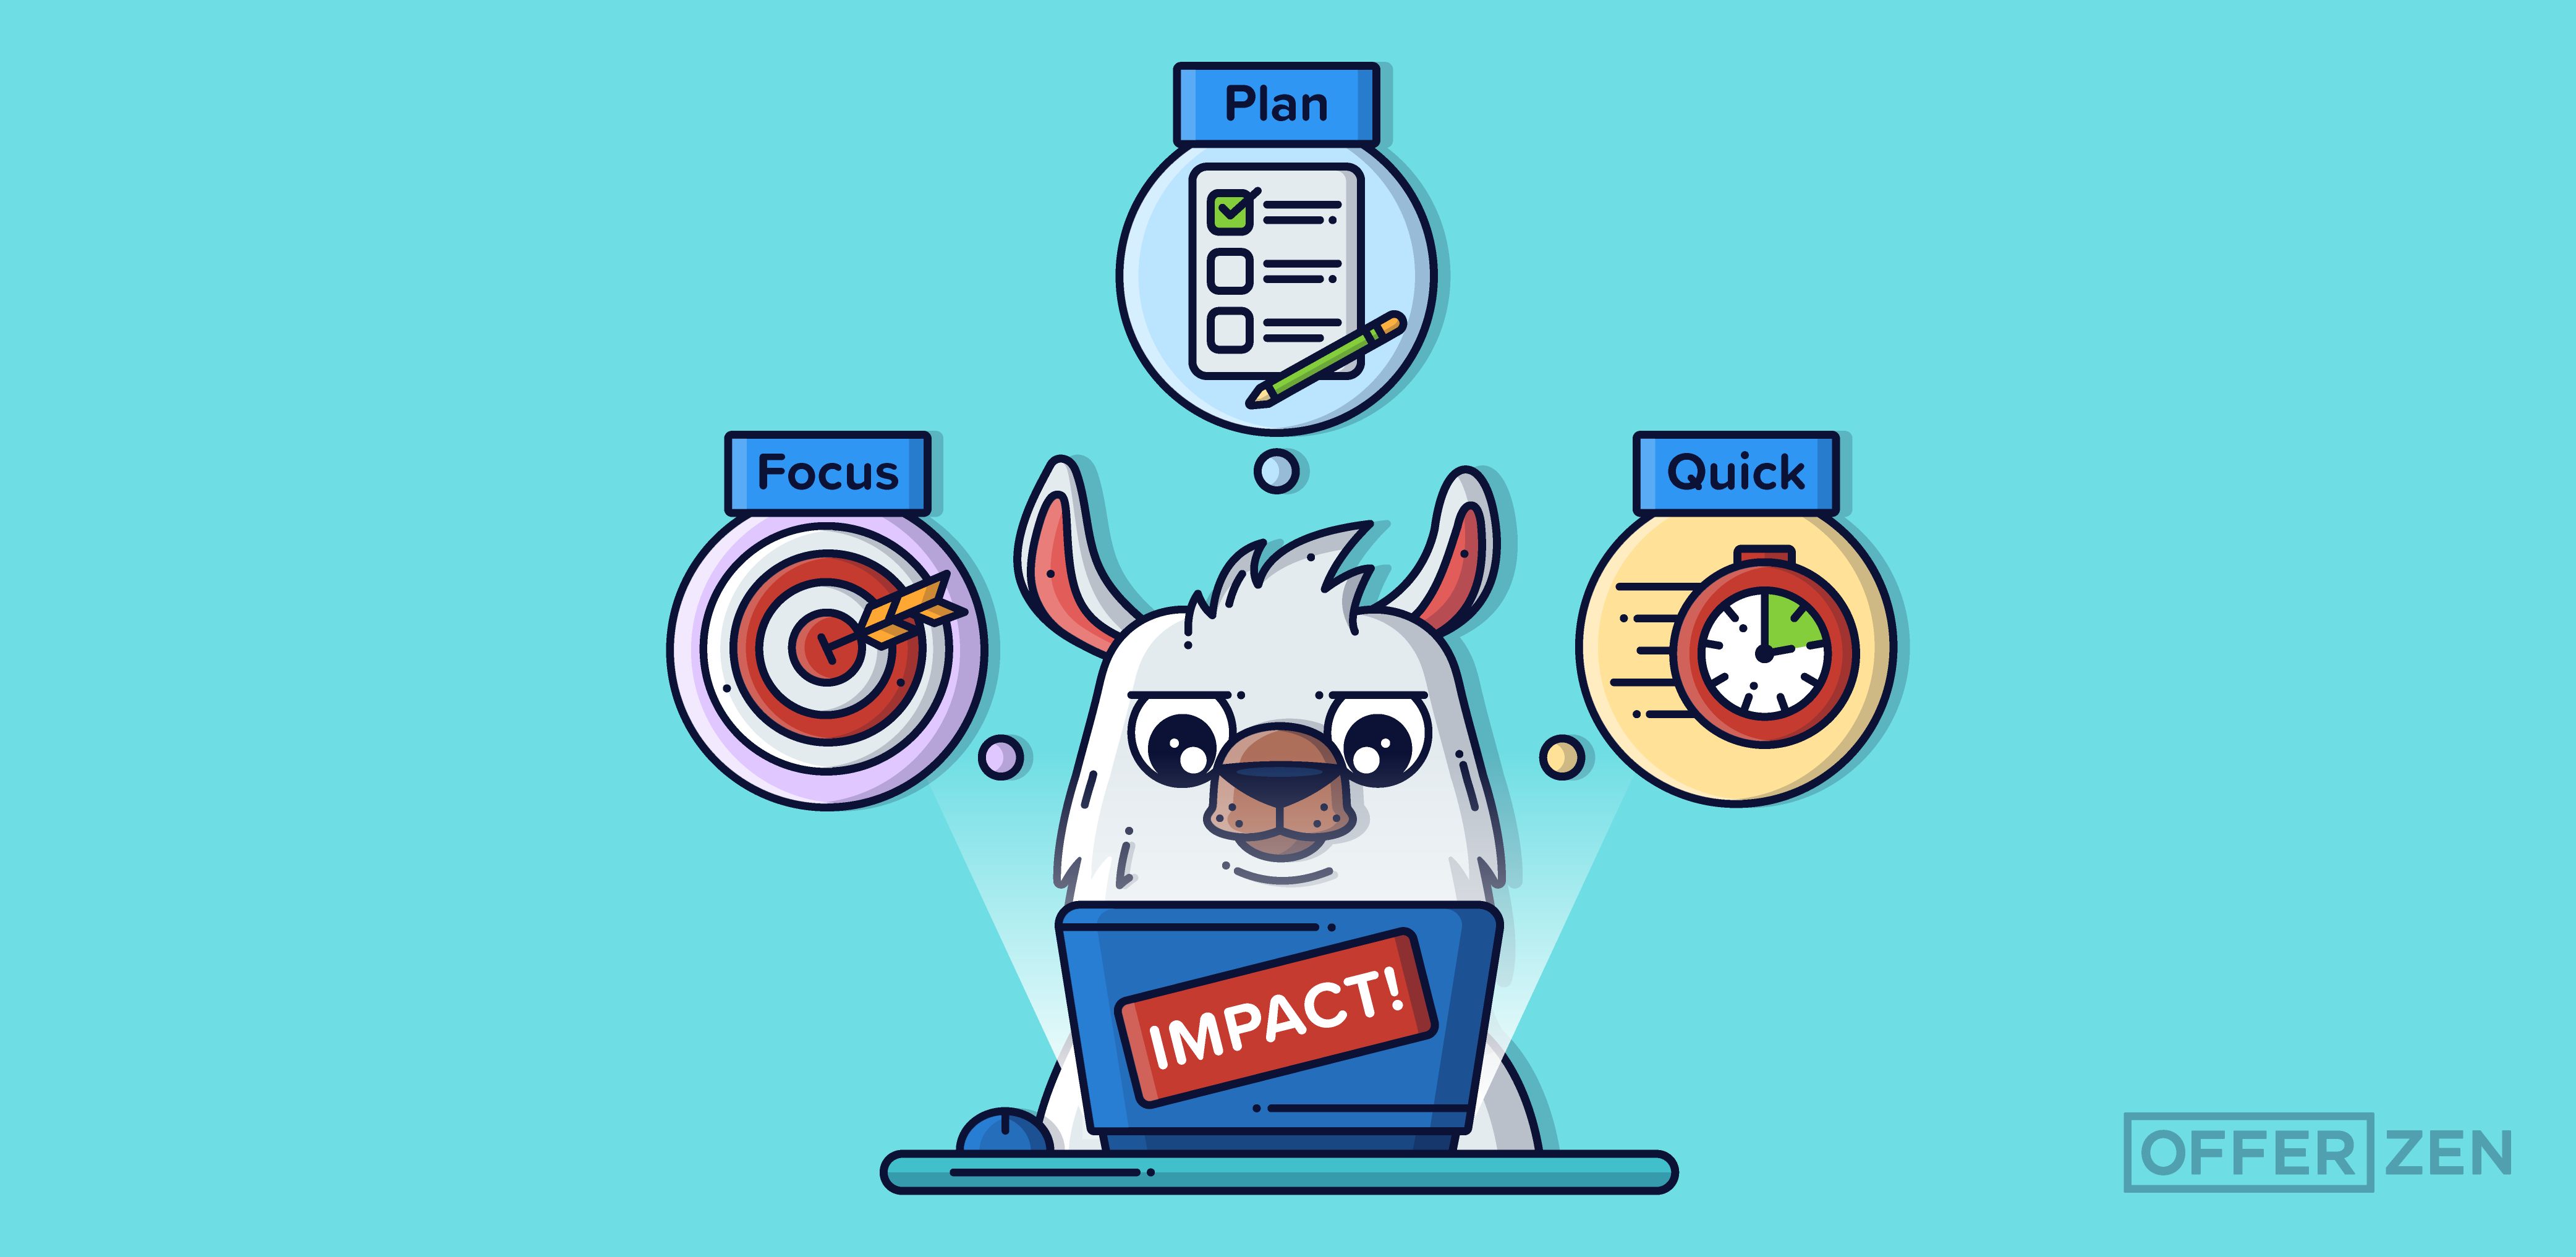 How-to-actually-make-an-impact-as-a-product-designer